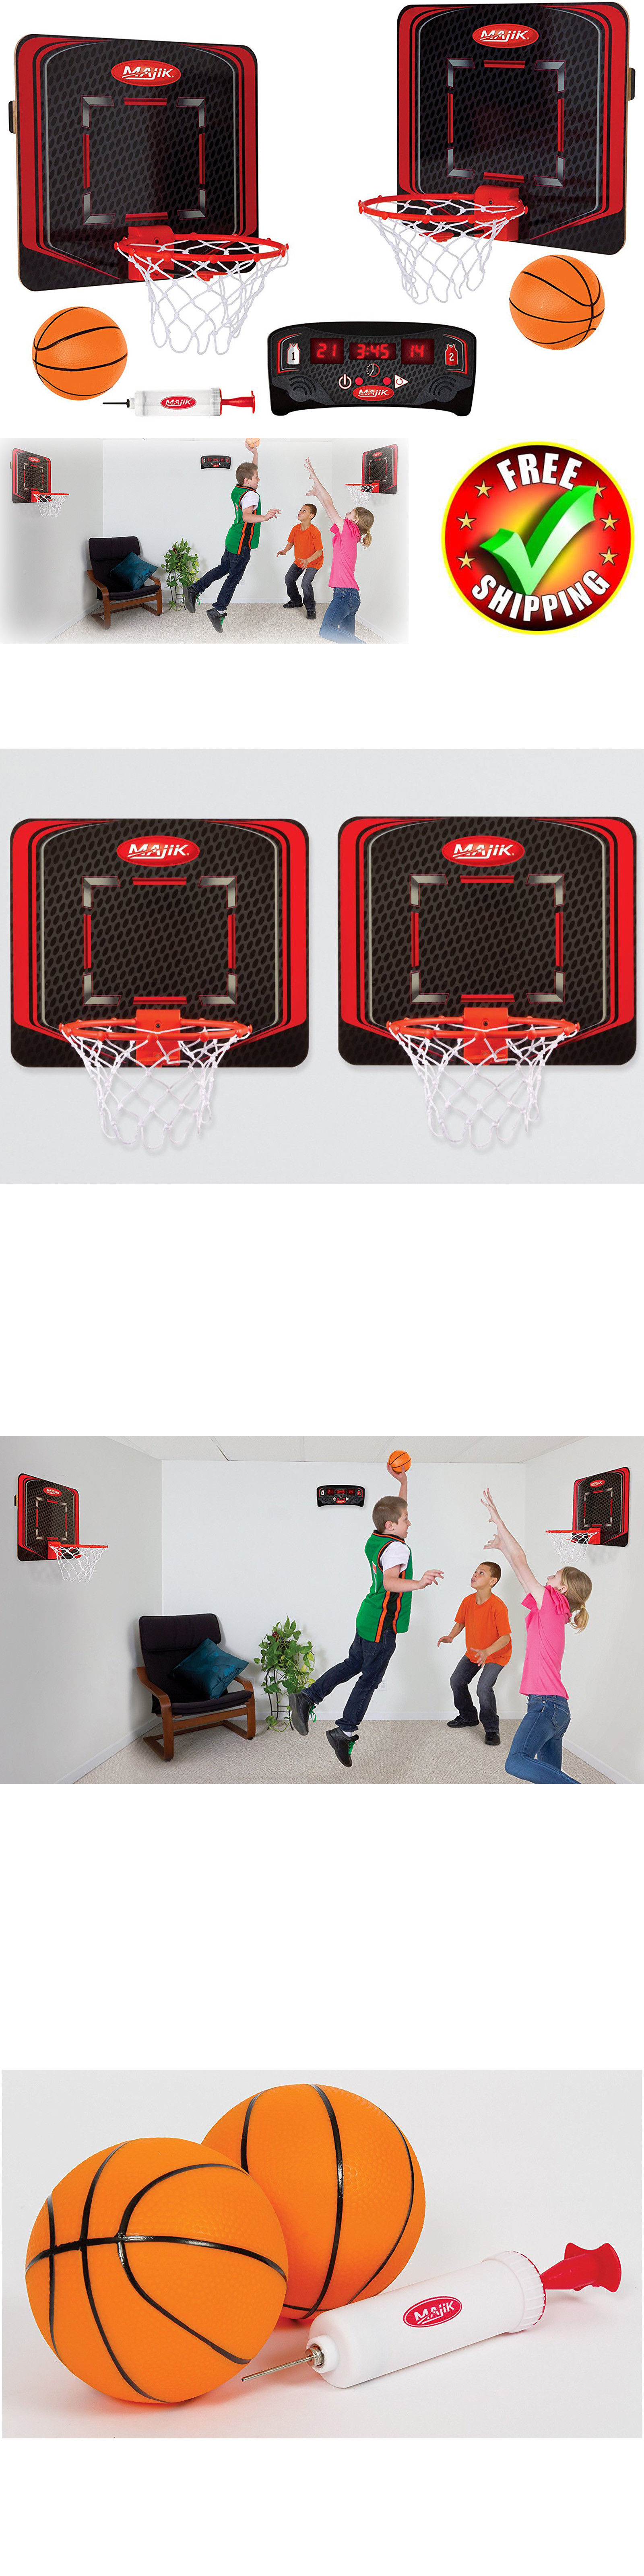 backboard systems 21196 indoor basketball game kid hoop training